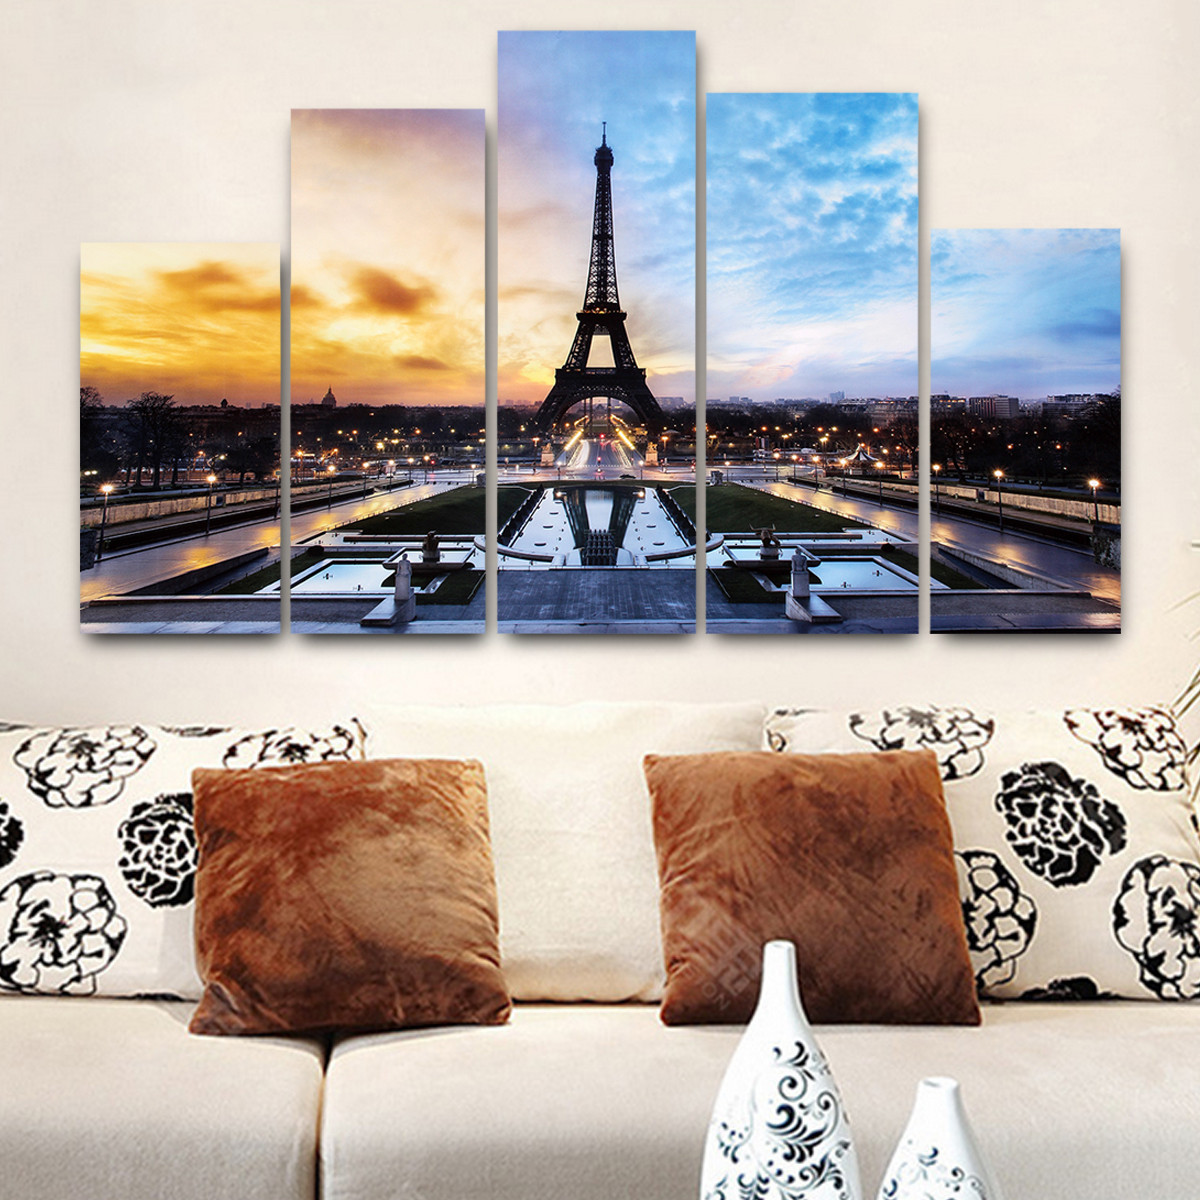 5 in 1 Modern Art Oil Paintings Eiffel Tower Canvas Print Unframed Pictures Home Wall Sticker Decor